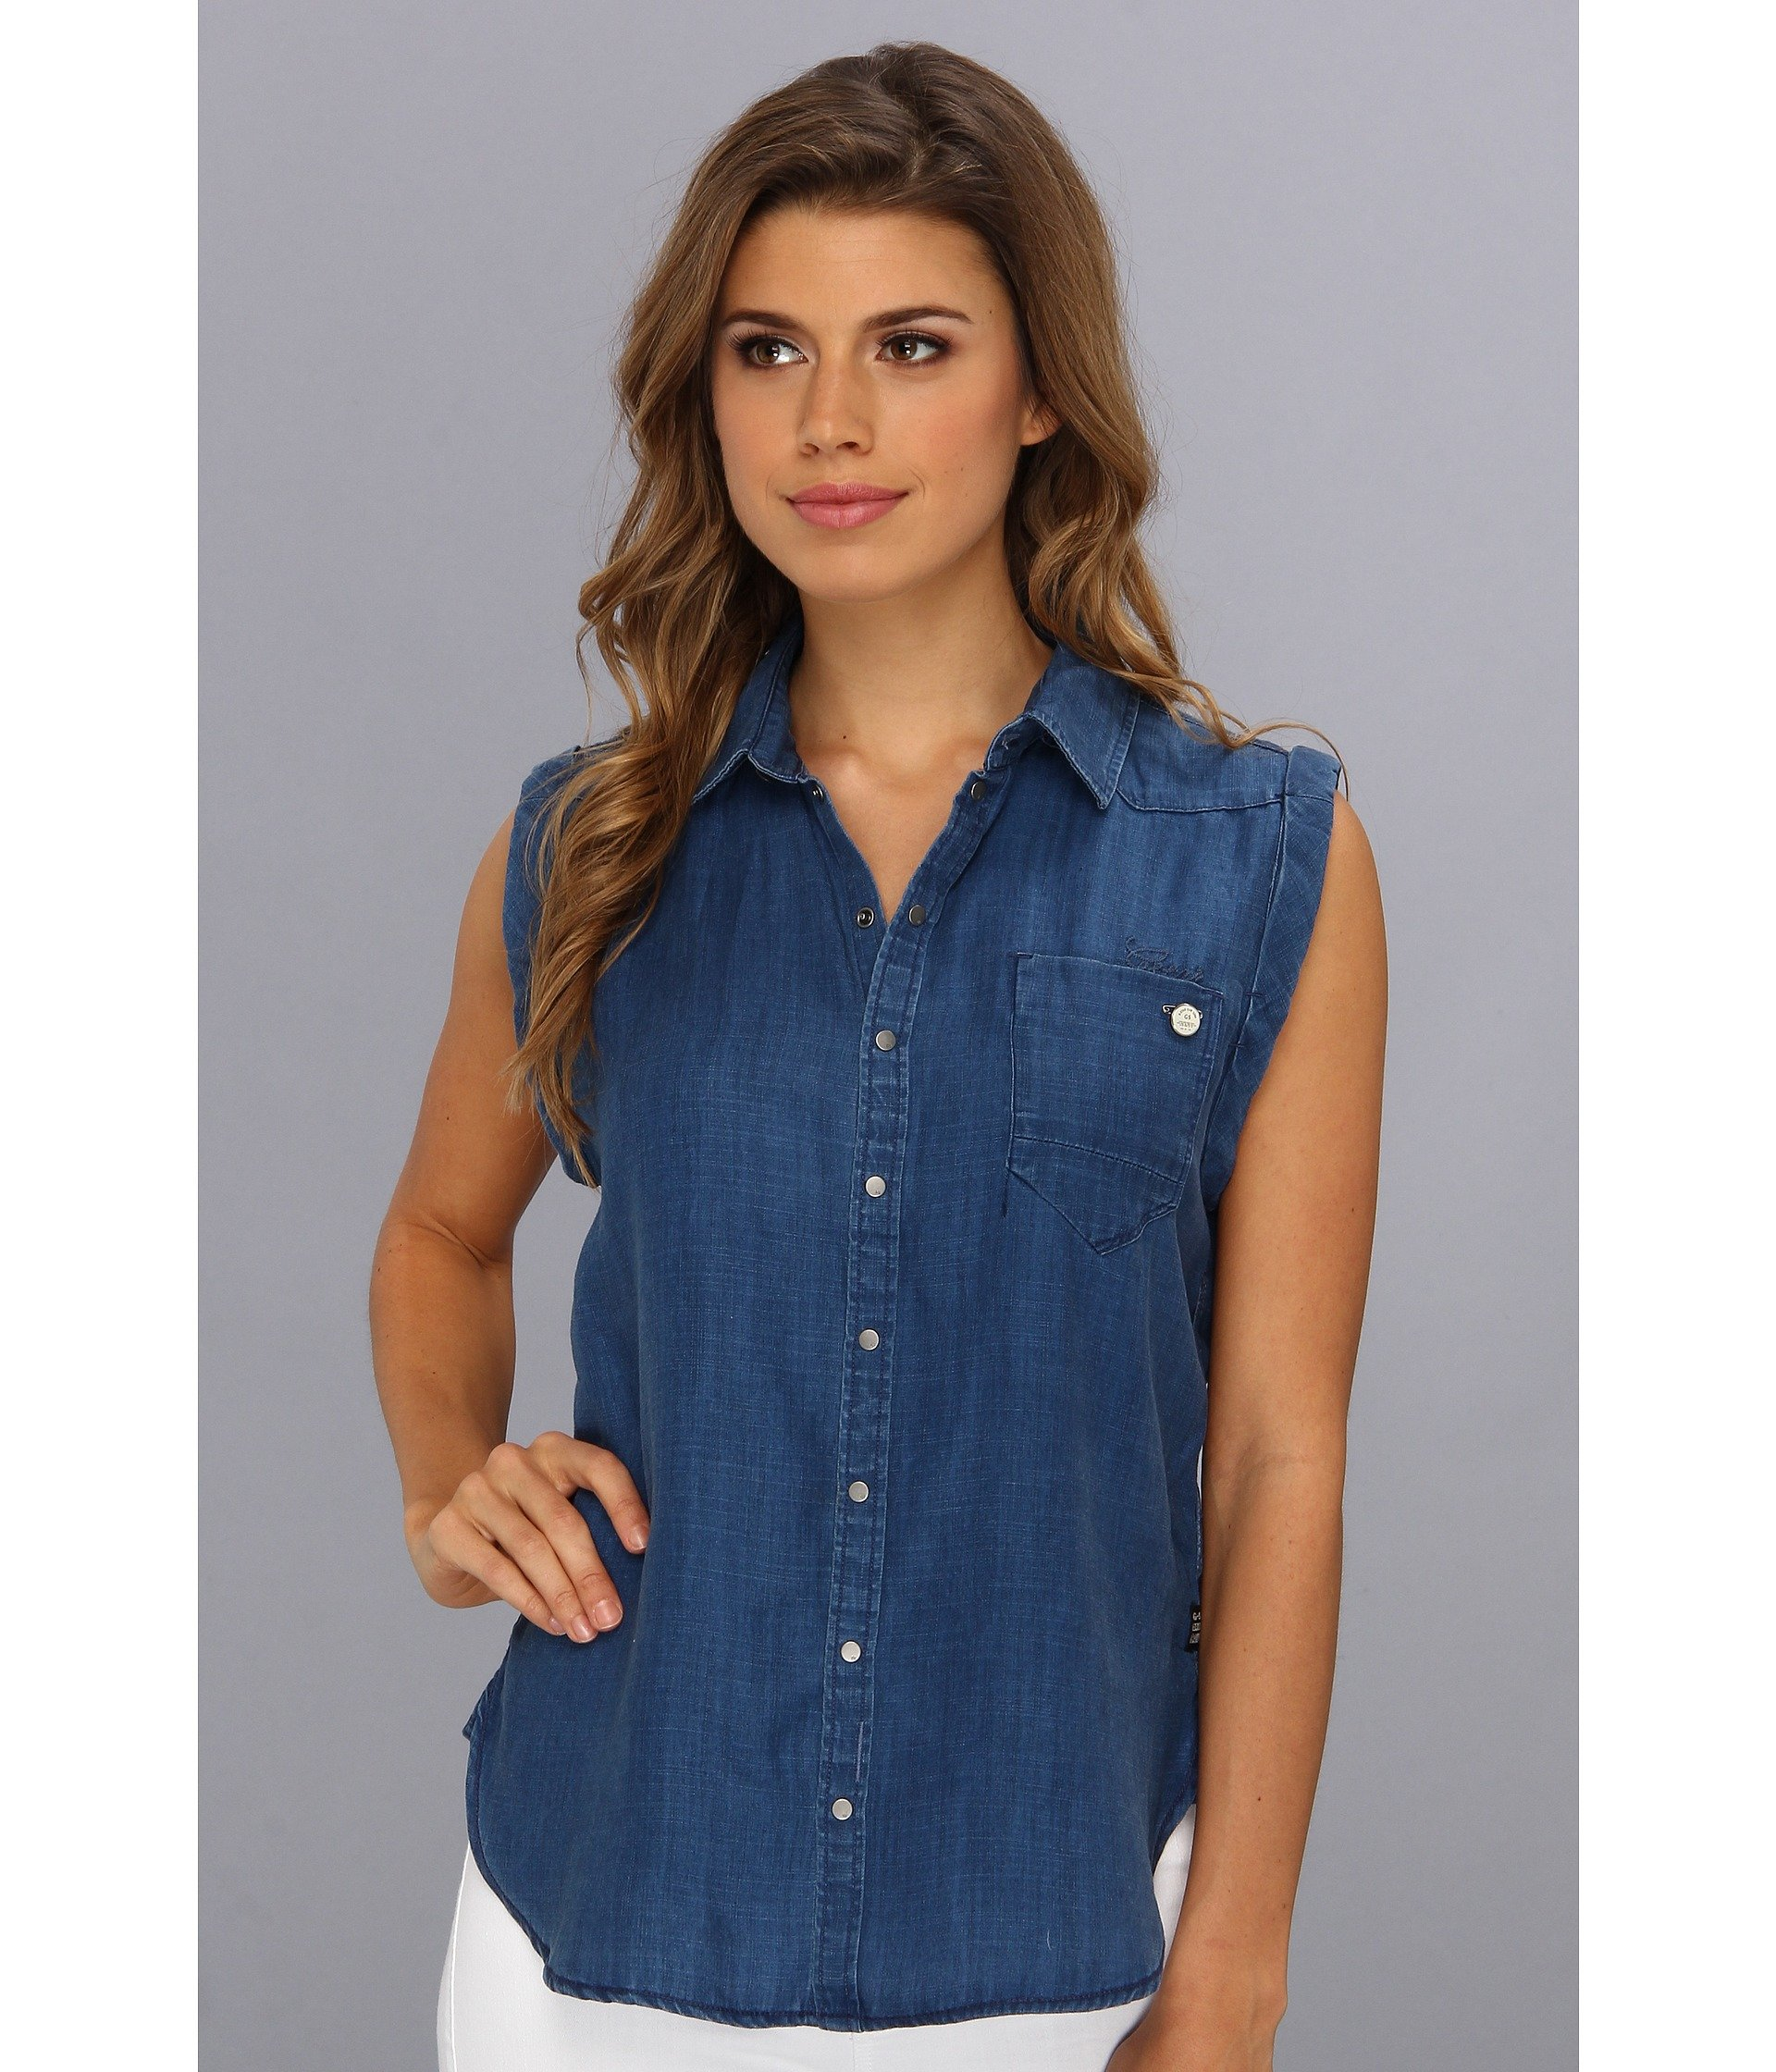 G-star raw Lancer Boyfriend Fit Sleeveless Shirt in Onis Denim ...